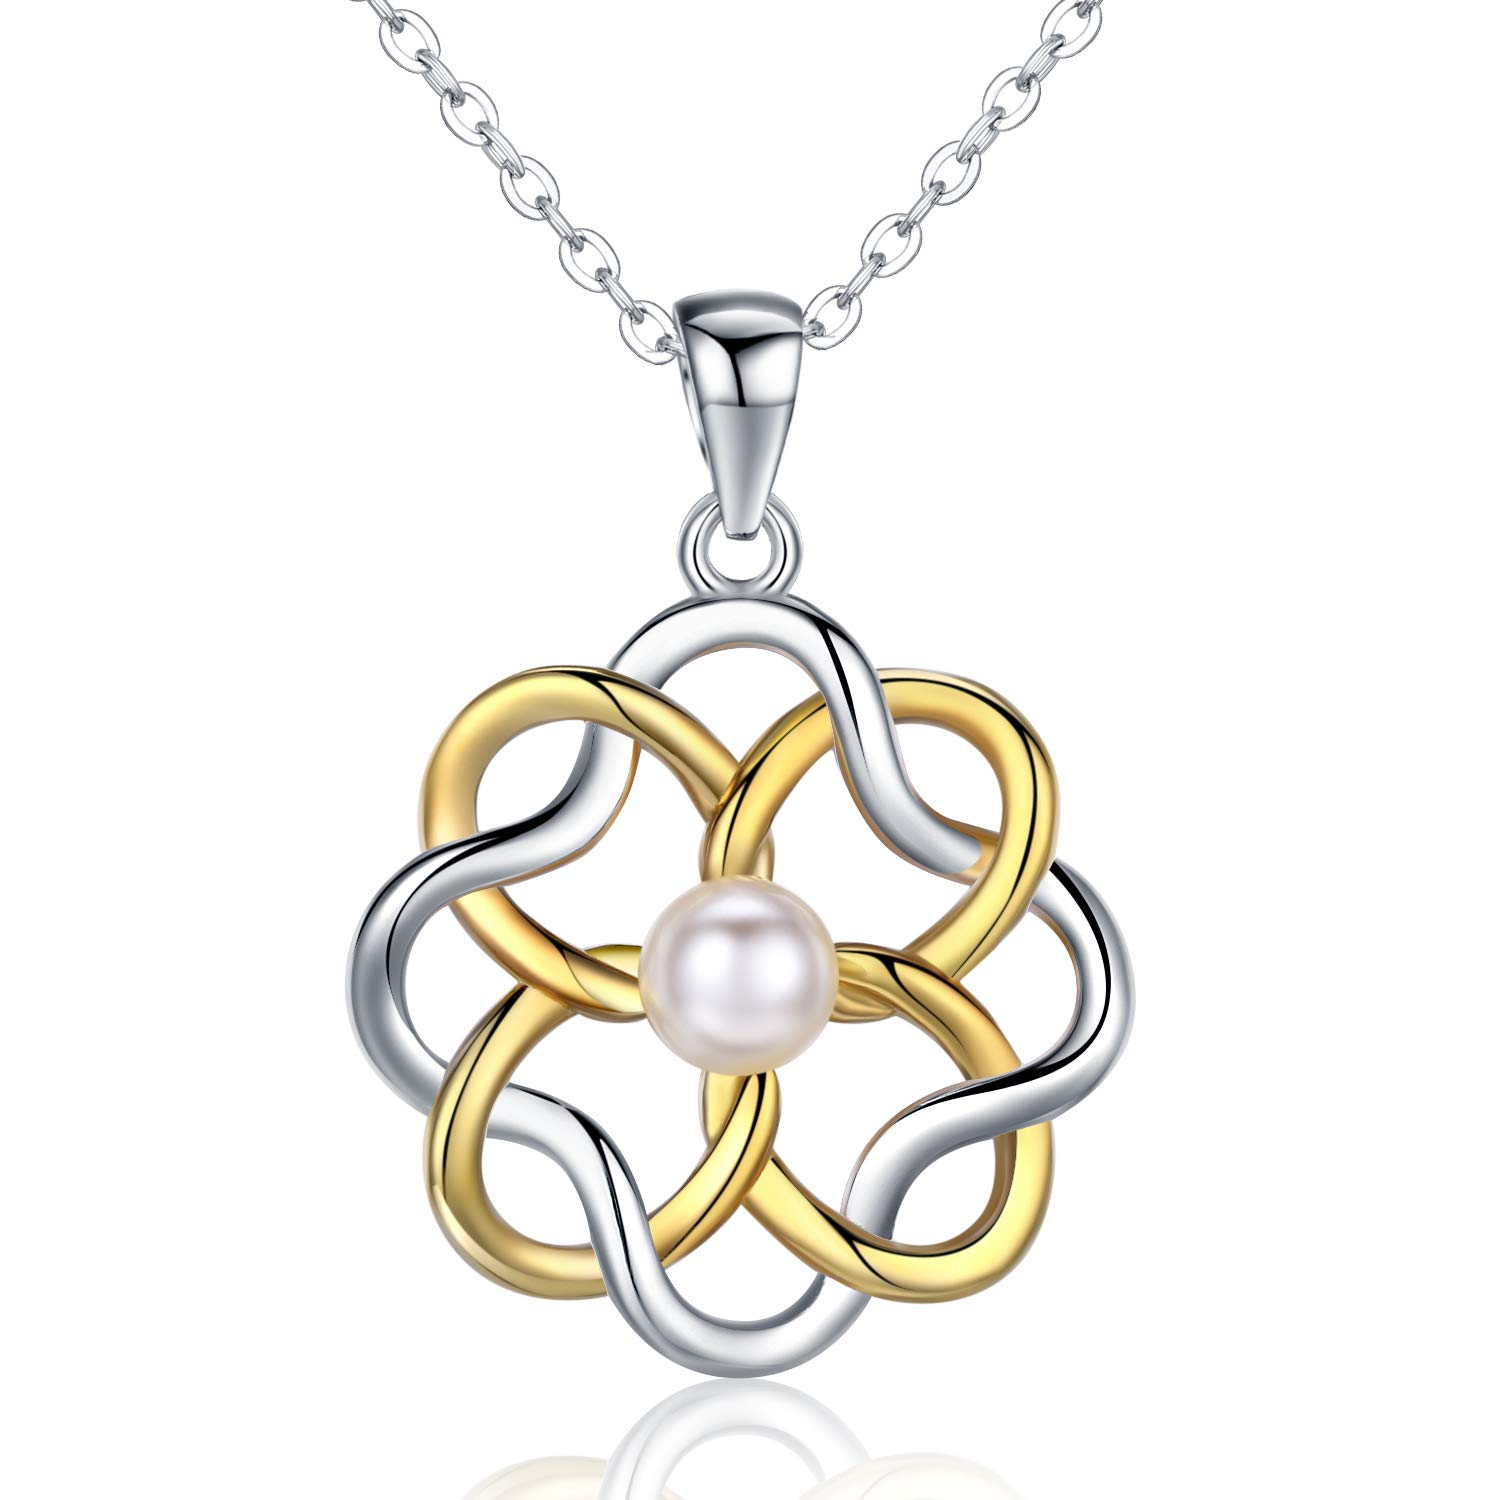 JUSTKIDSTOY Endless Love Pearl Irish Celtic Knot Necklace Gold Silver Knot Pendant Necklace for Women Girls Mom Girlfriend